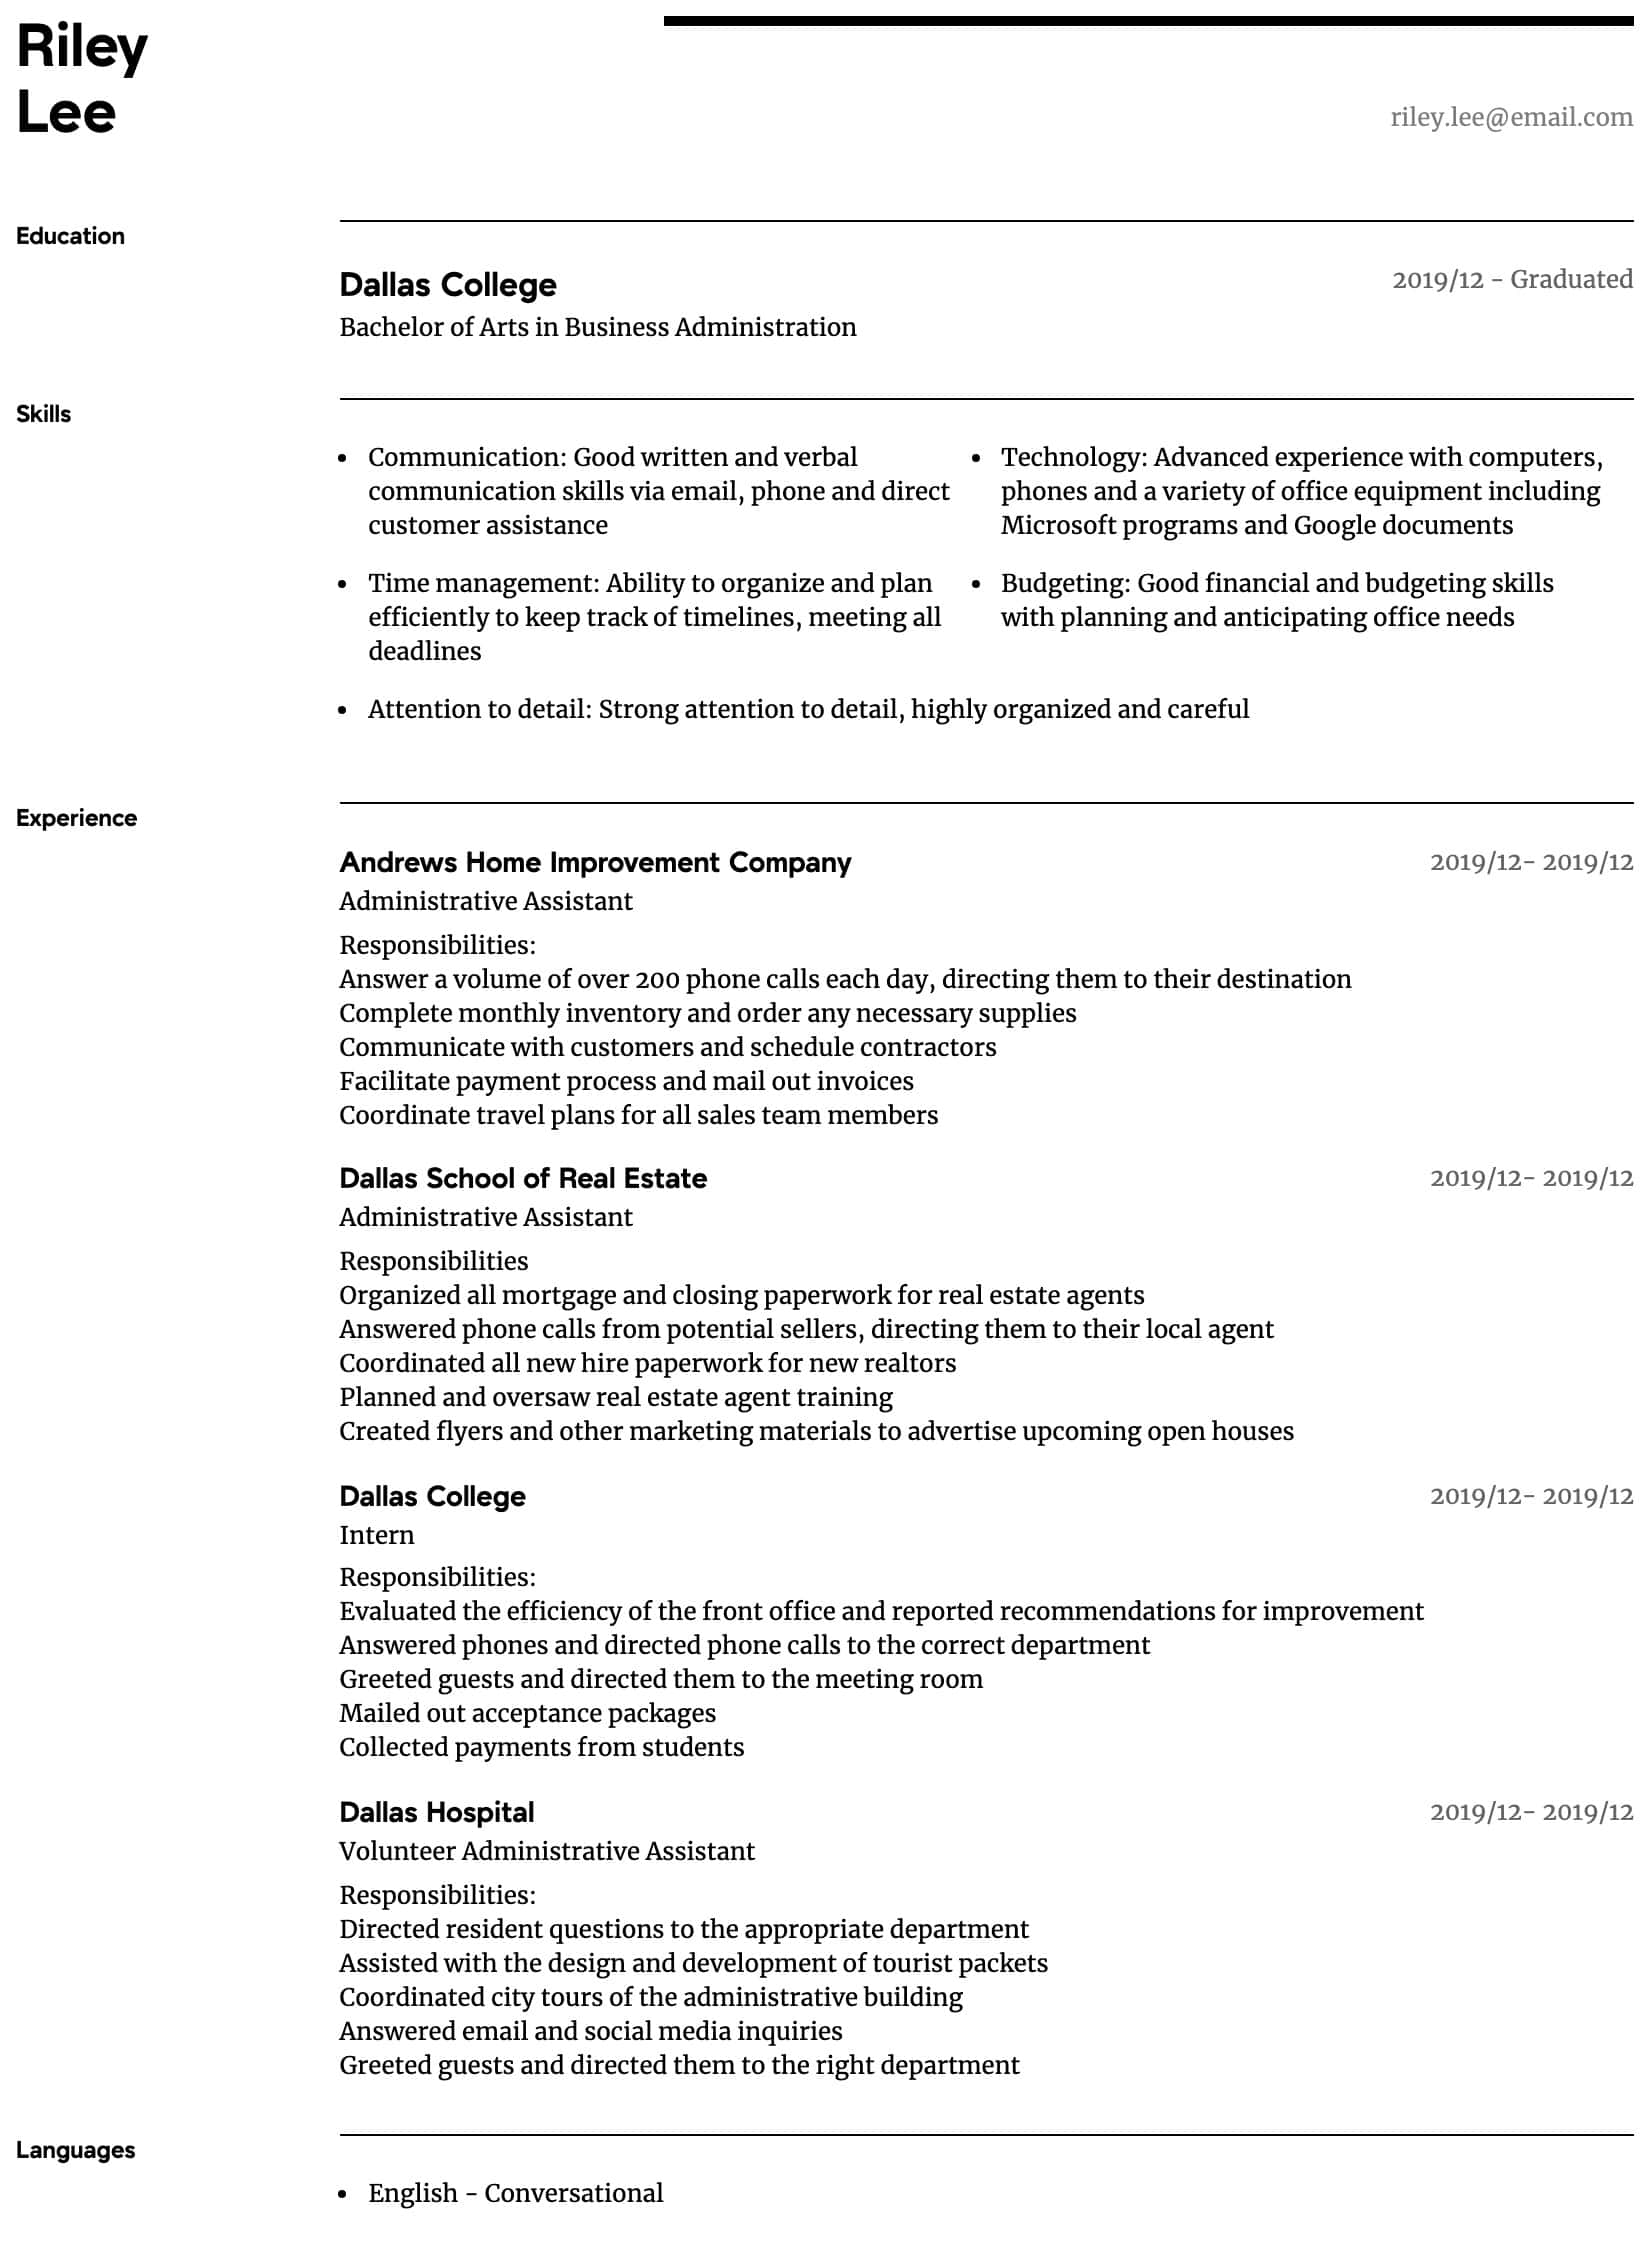 administrative assistant resume samples all experience levels job description Resume Administrative Assistant Job Description Resume